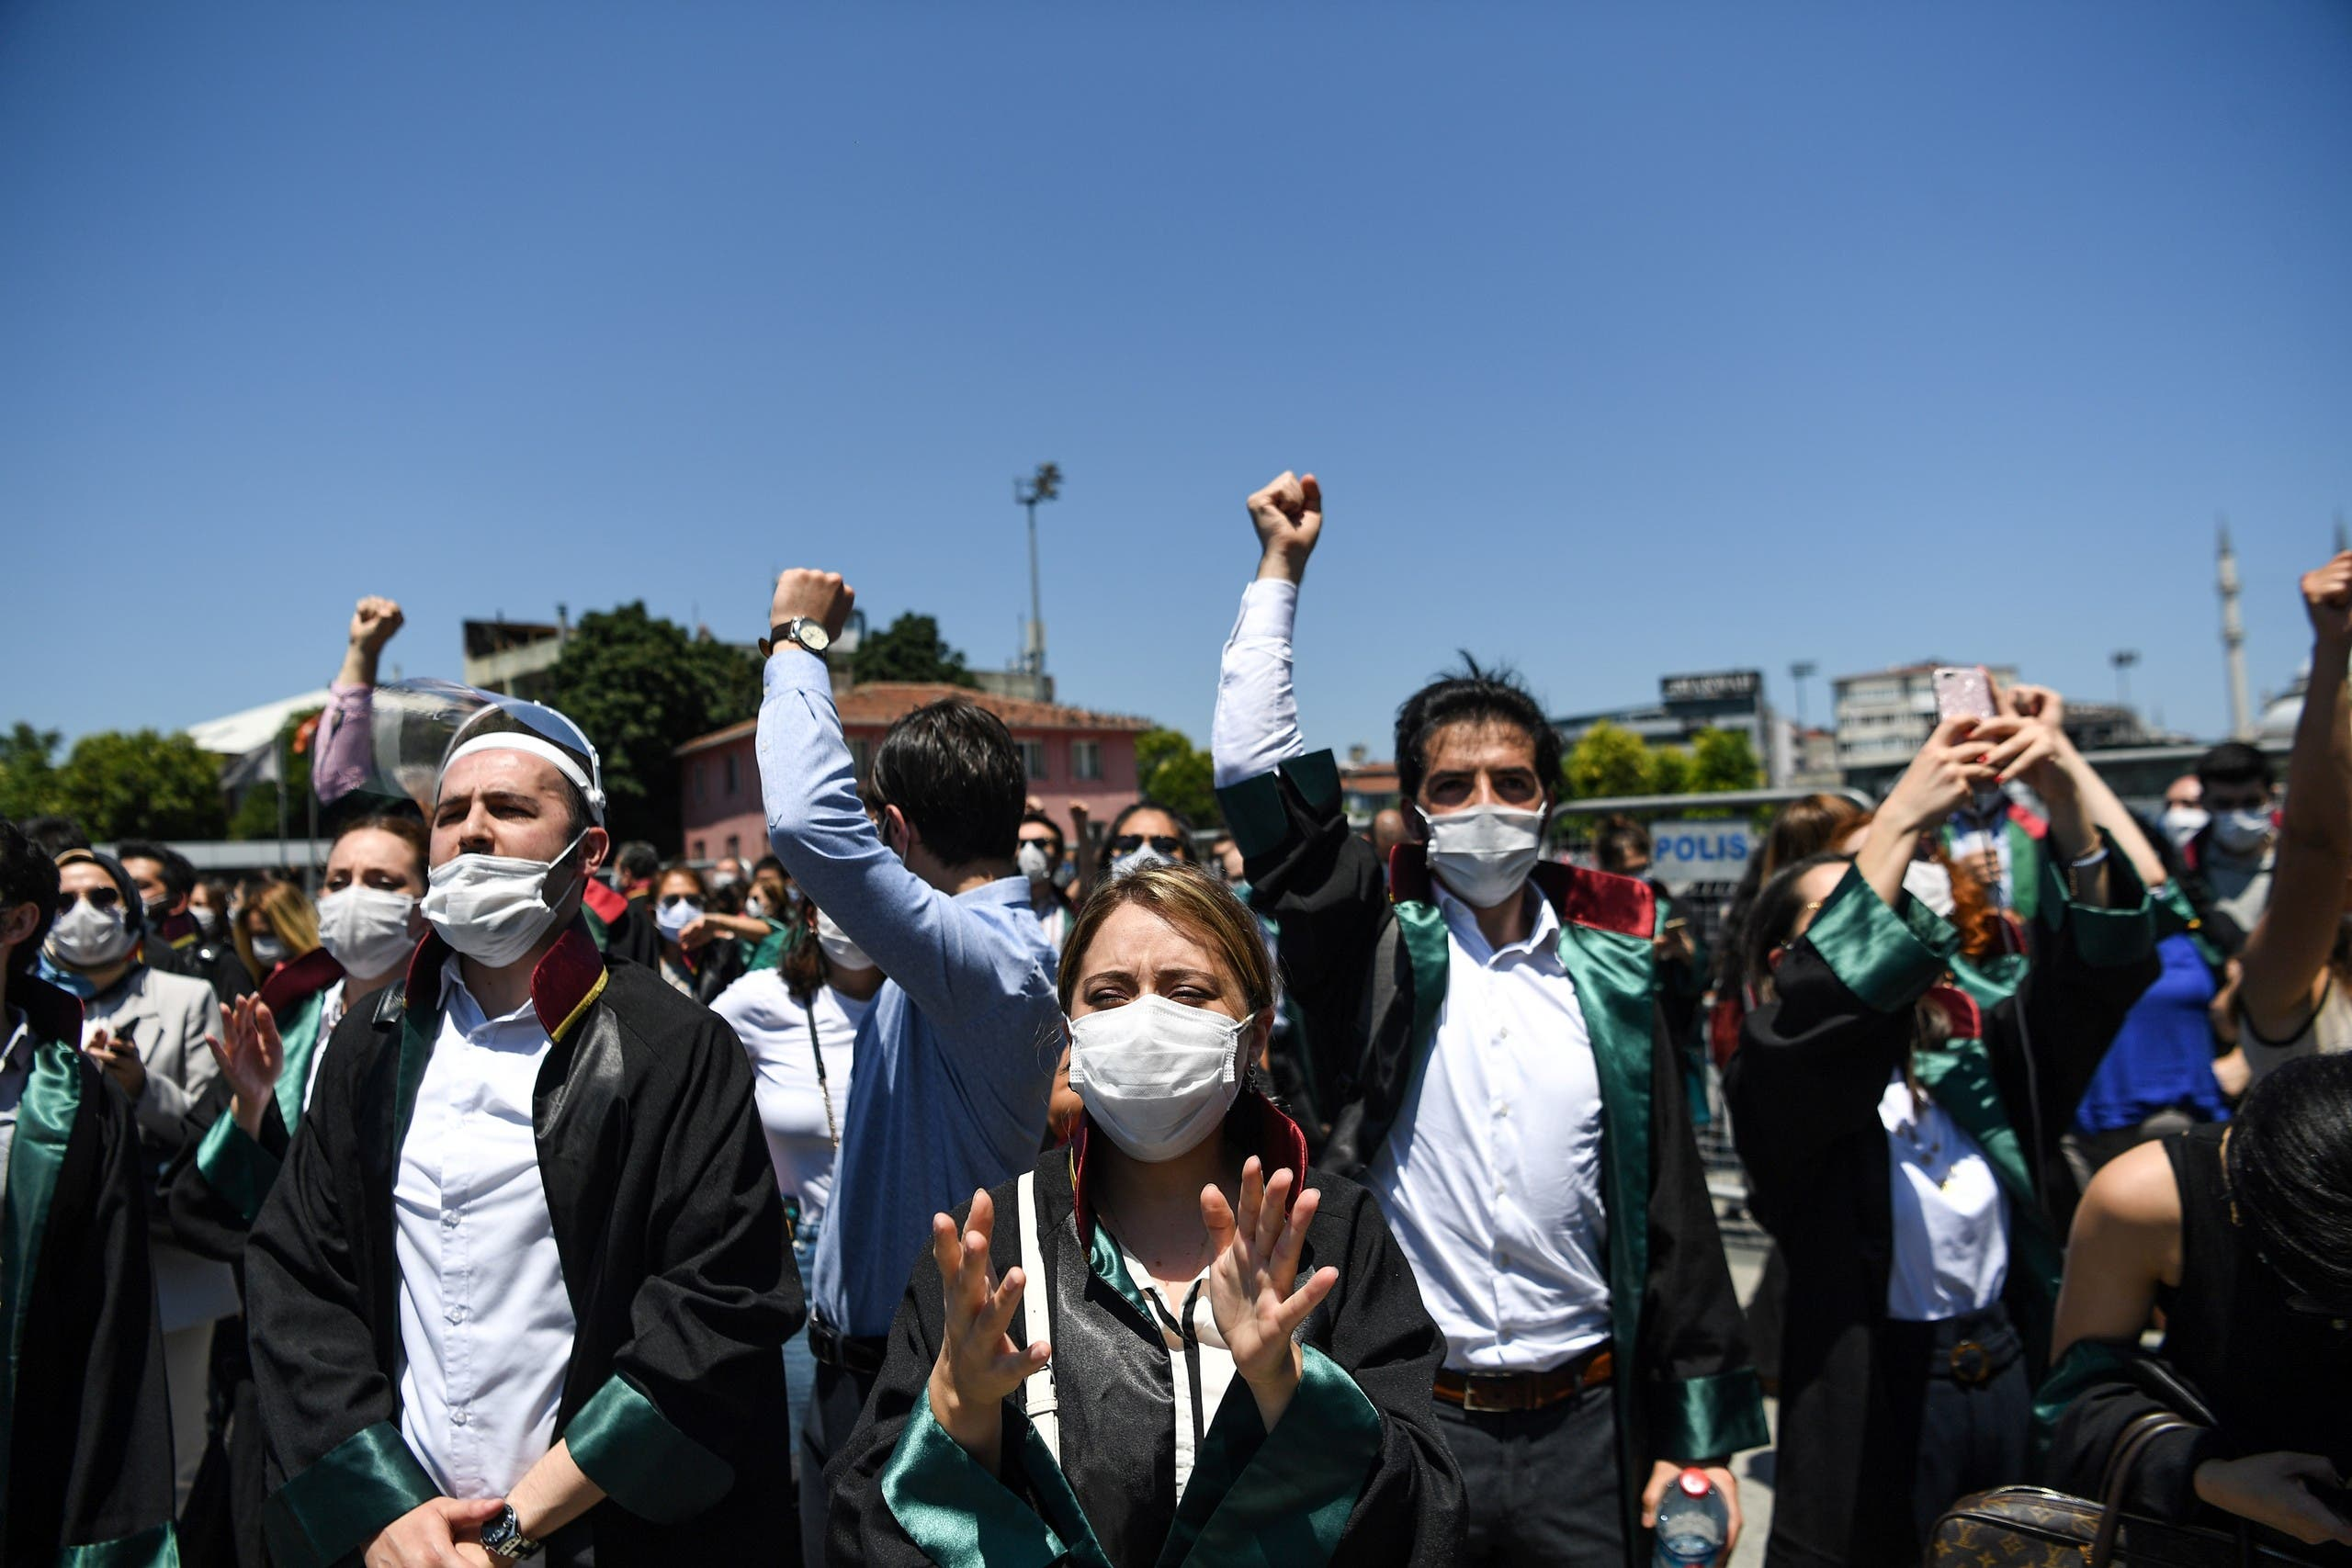 Lawyers demonstrate in front of Istanbul's courthouse, on June 30, 2020. (AFP)